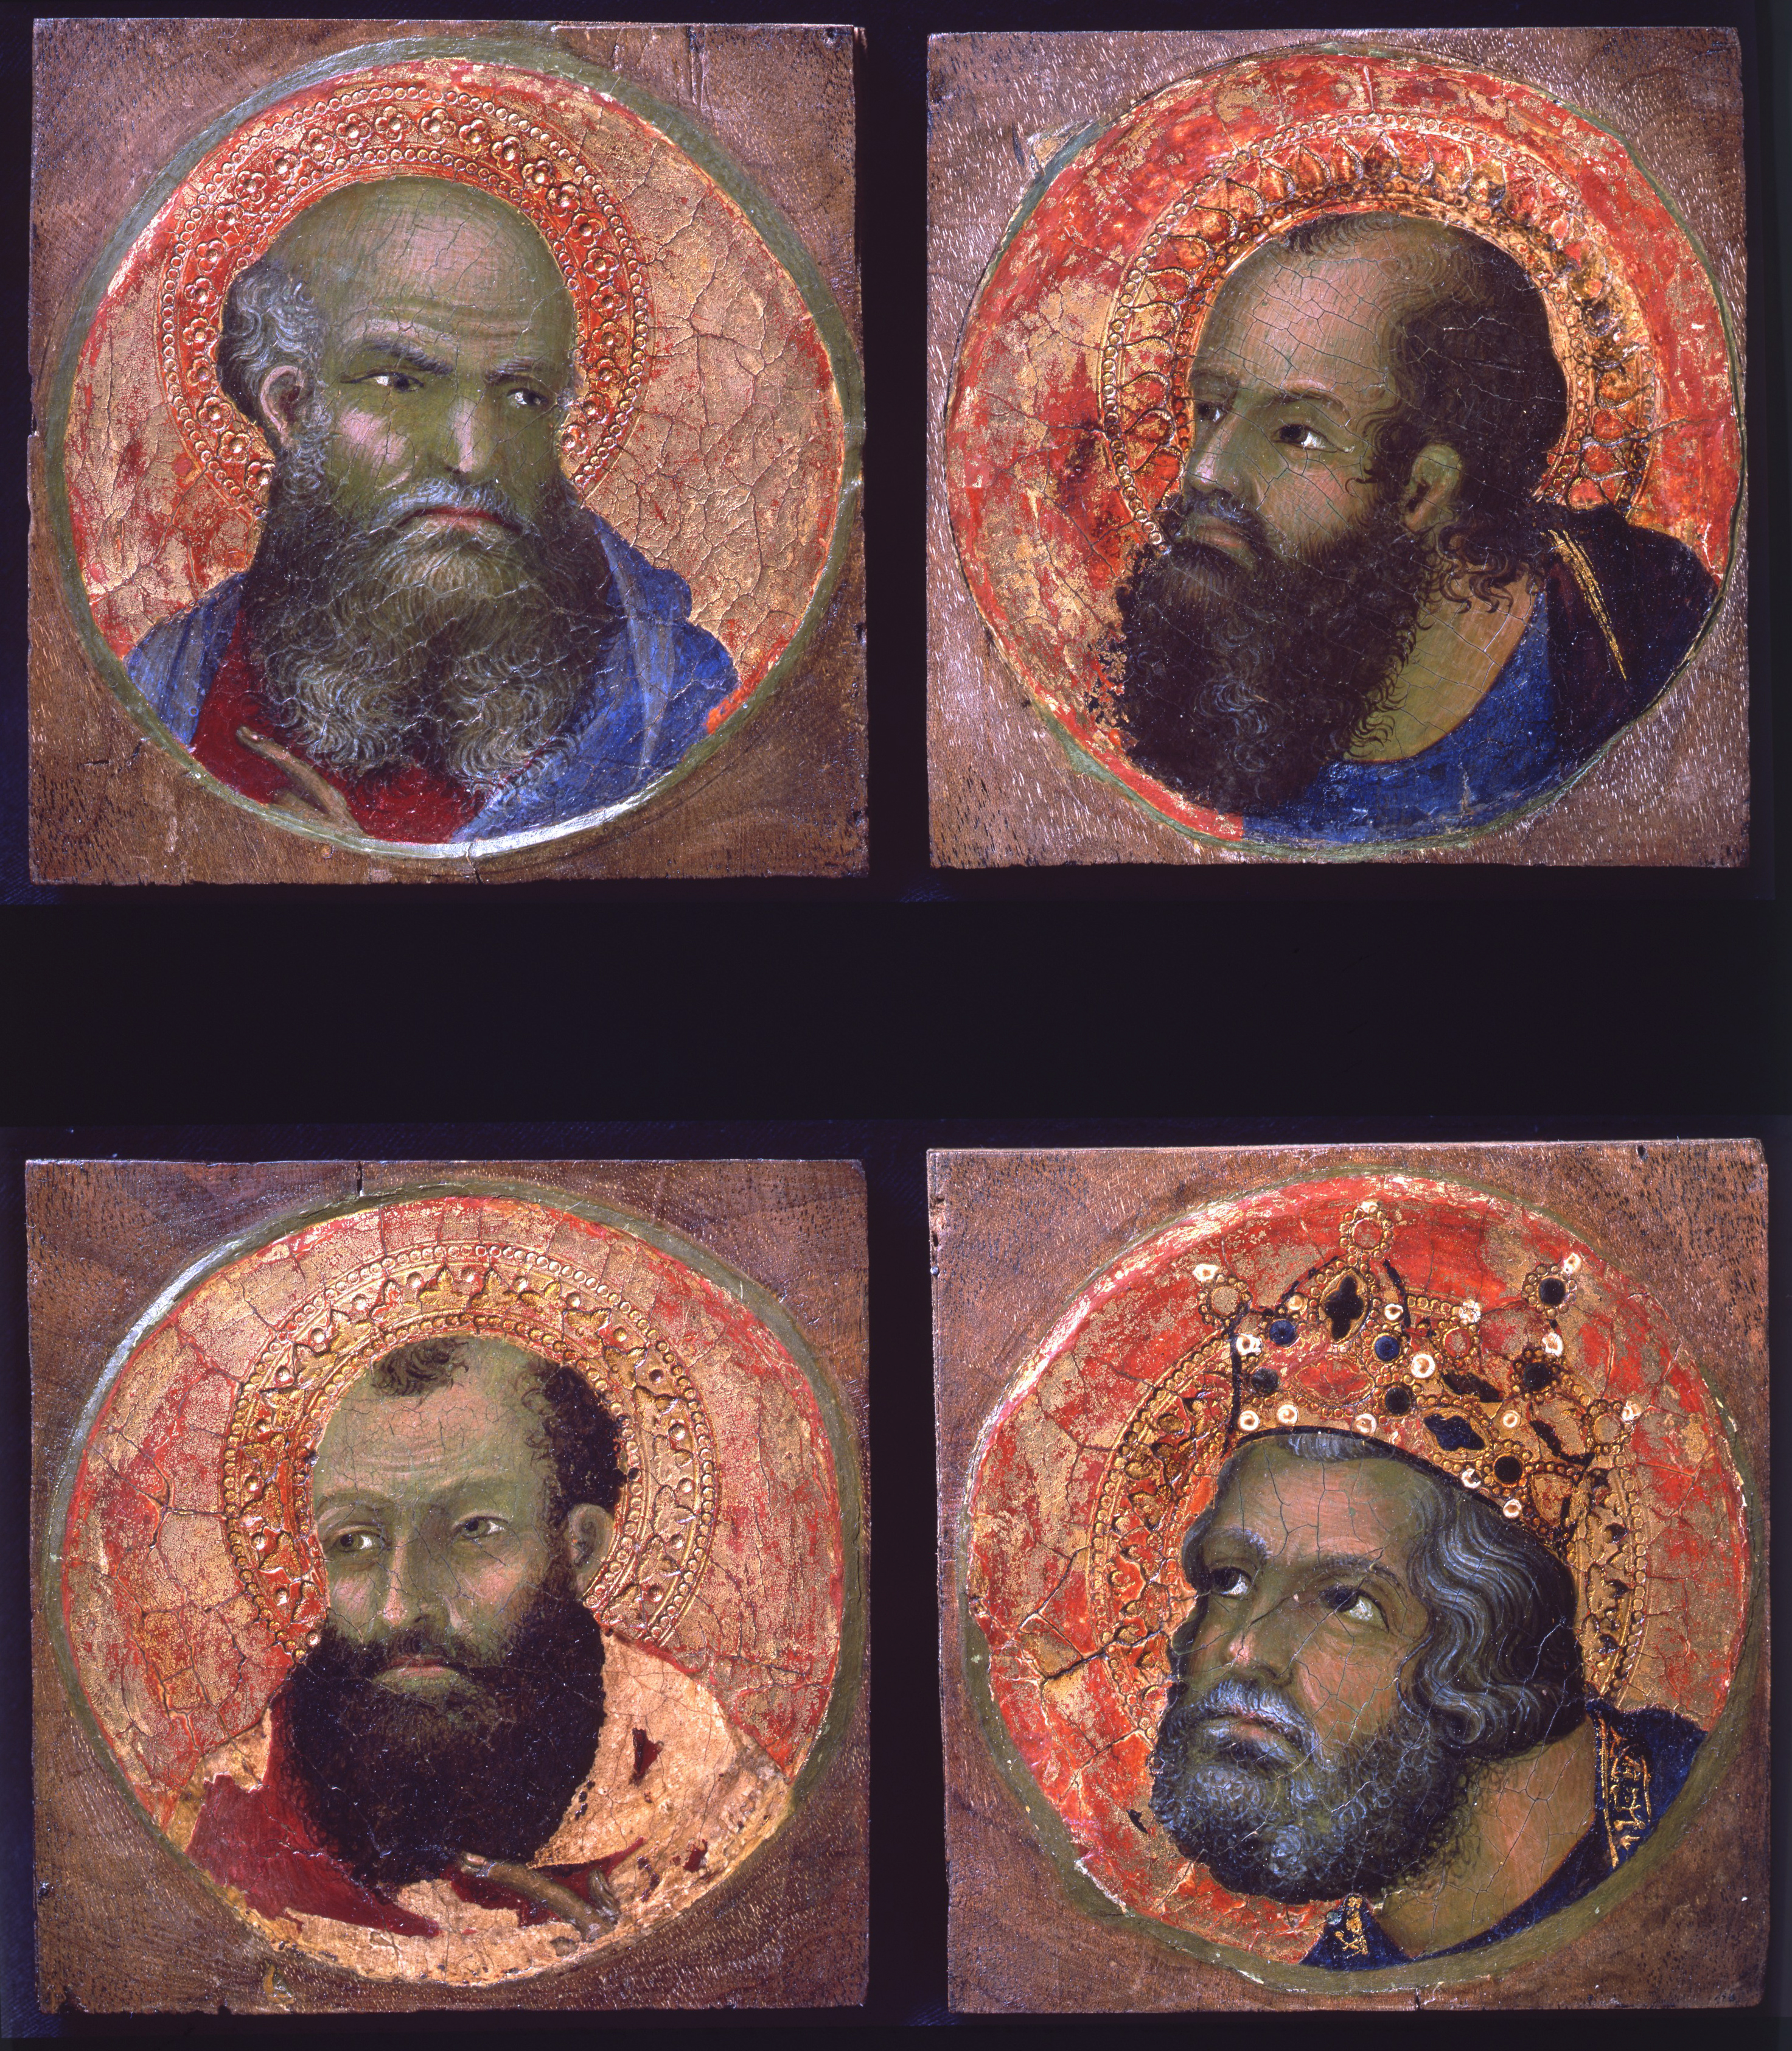 Three heads of prophers and the head of David